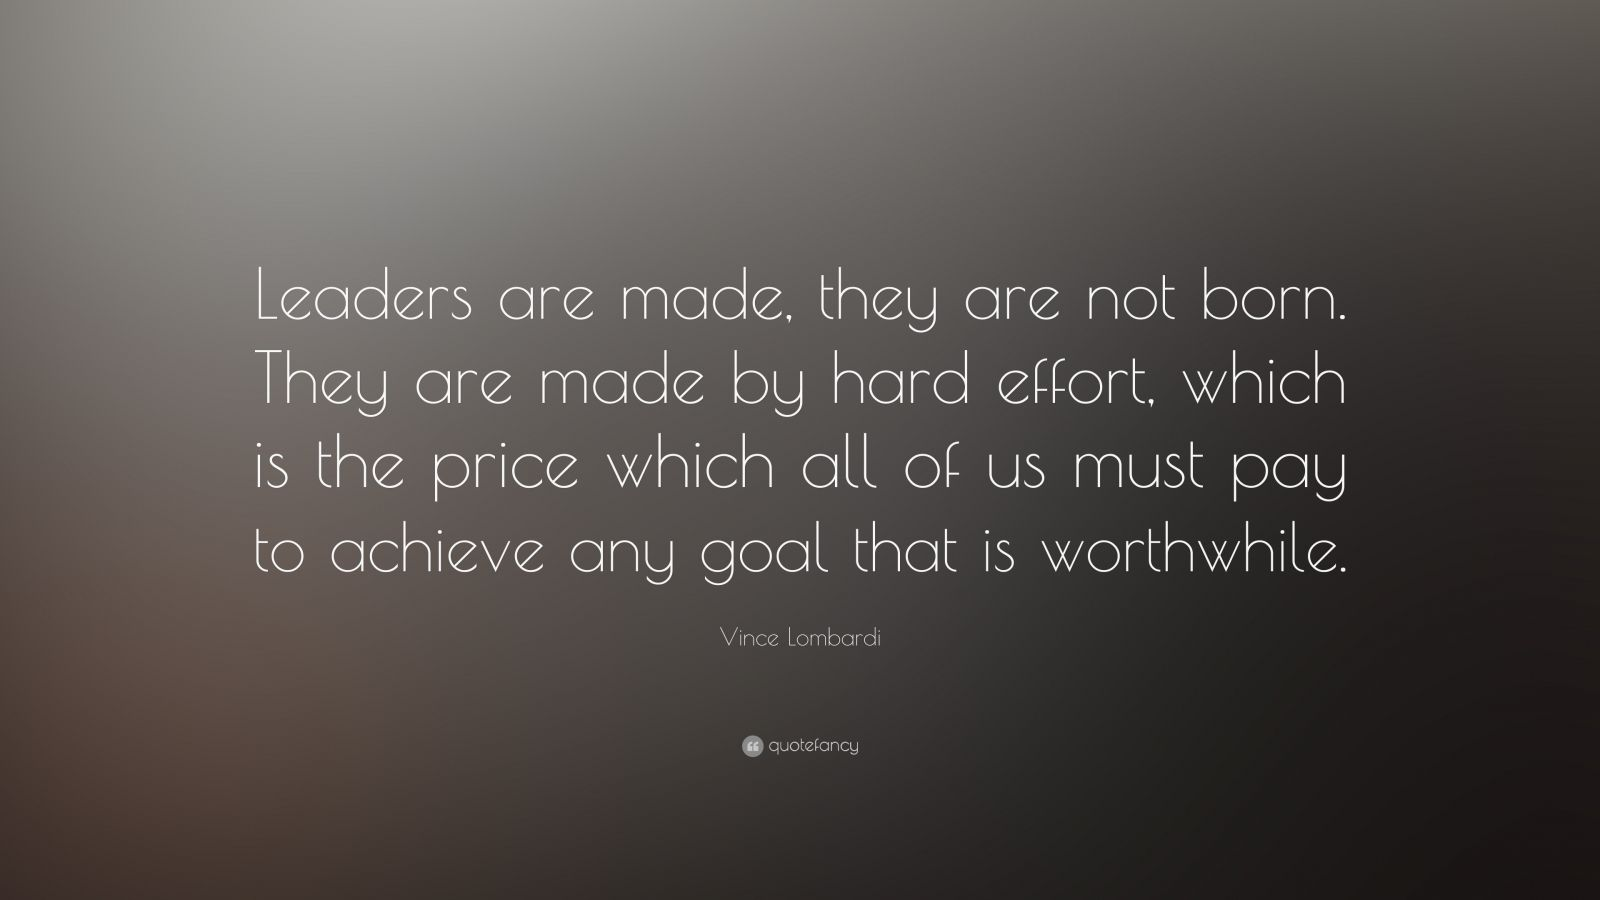 essay on leaders are not born but made